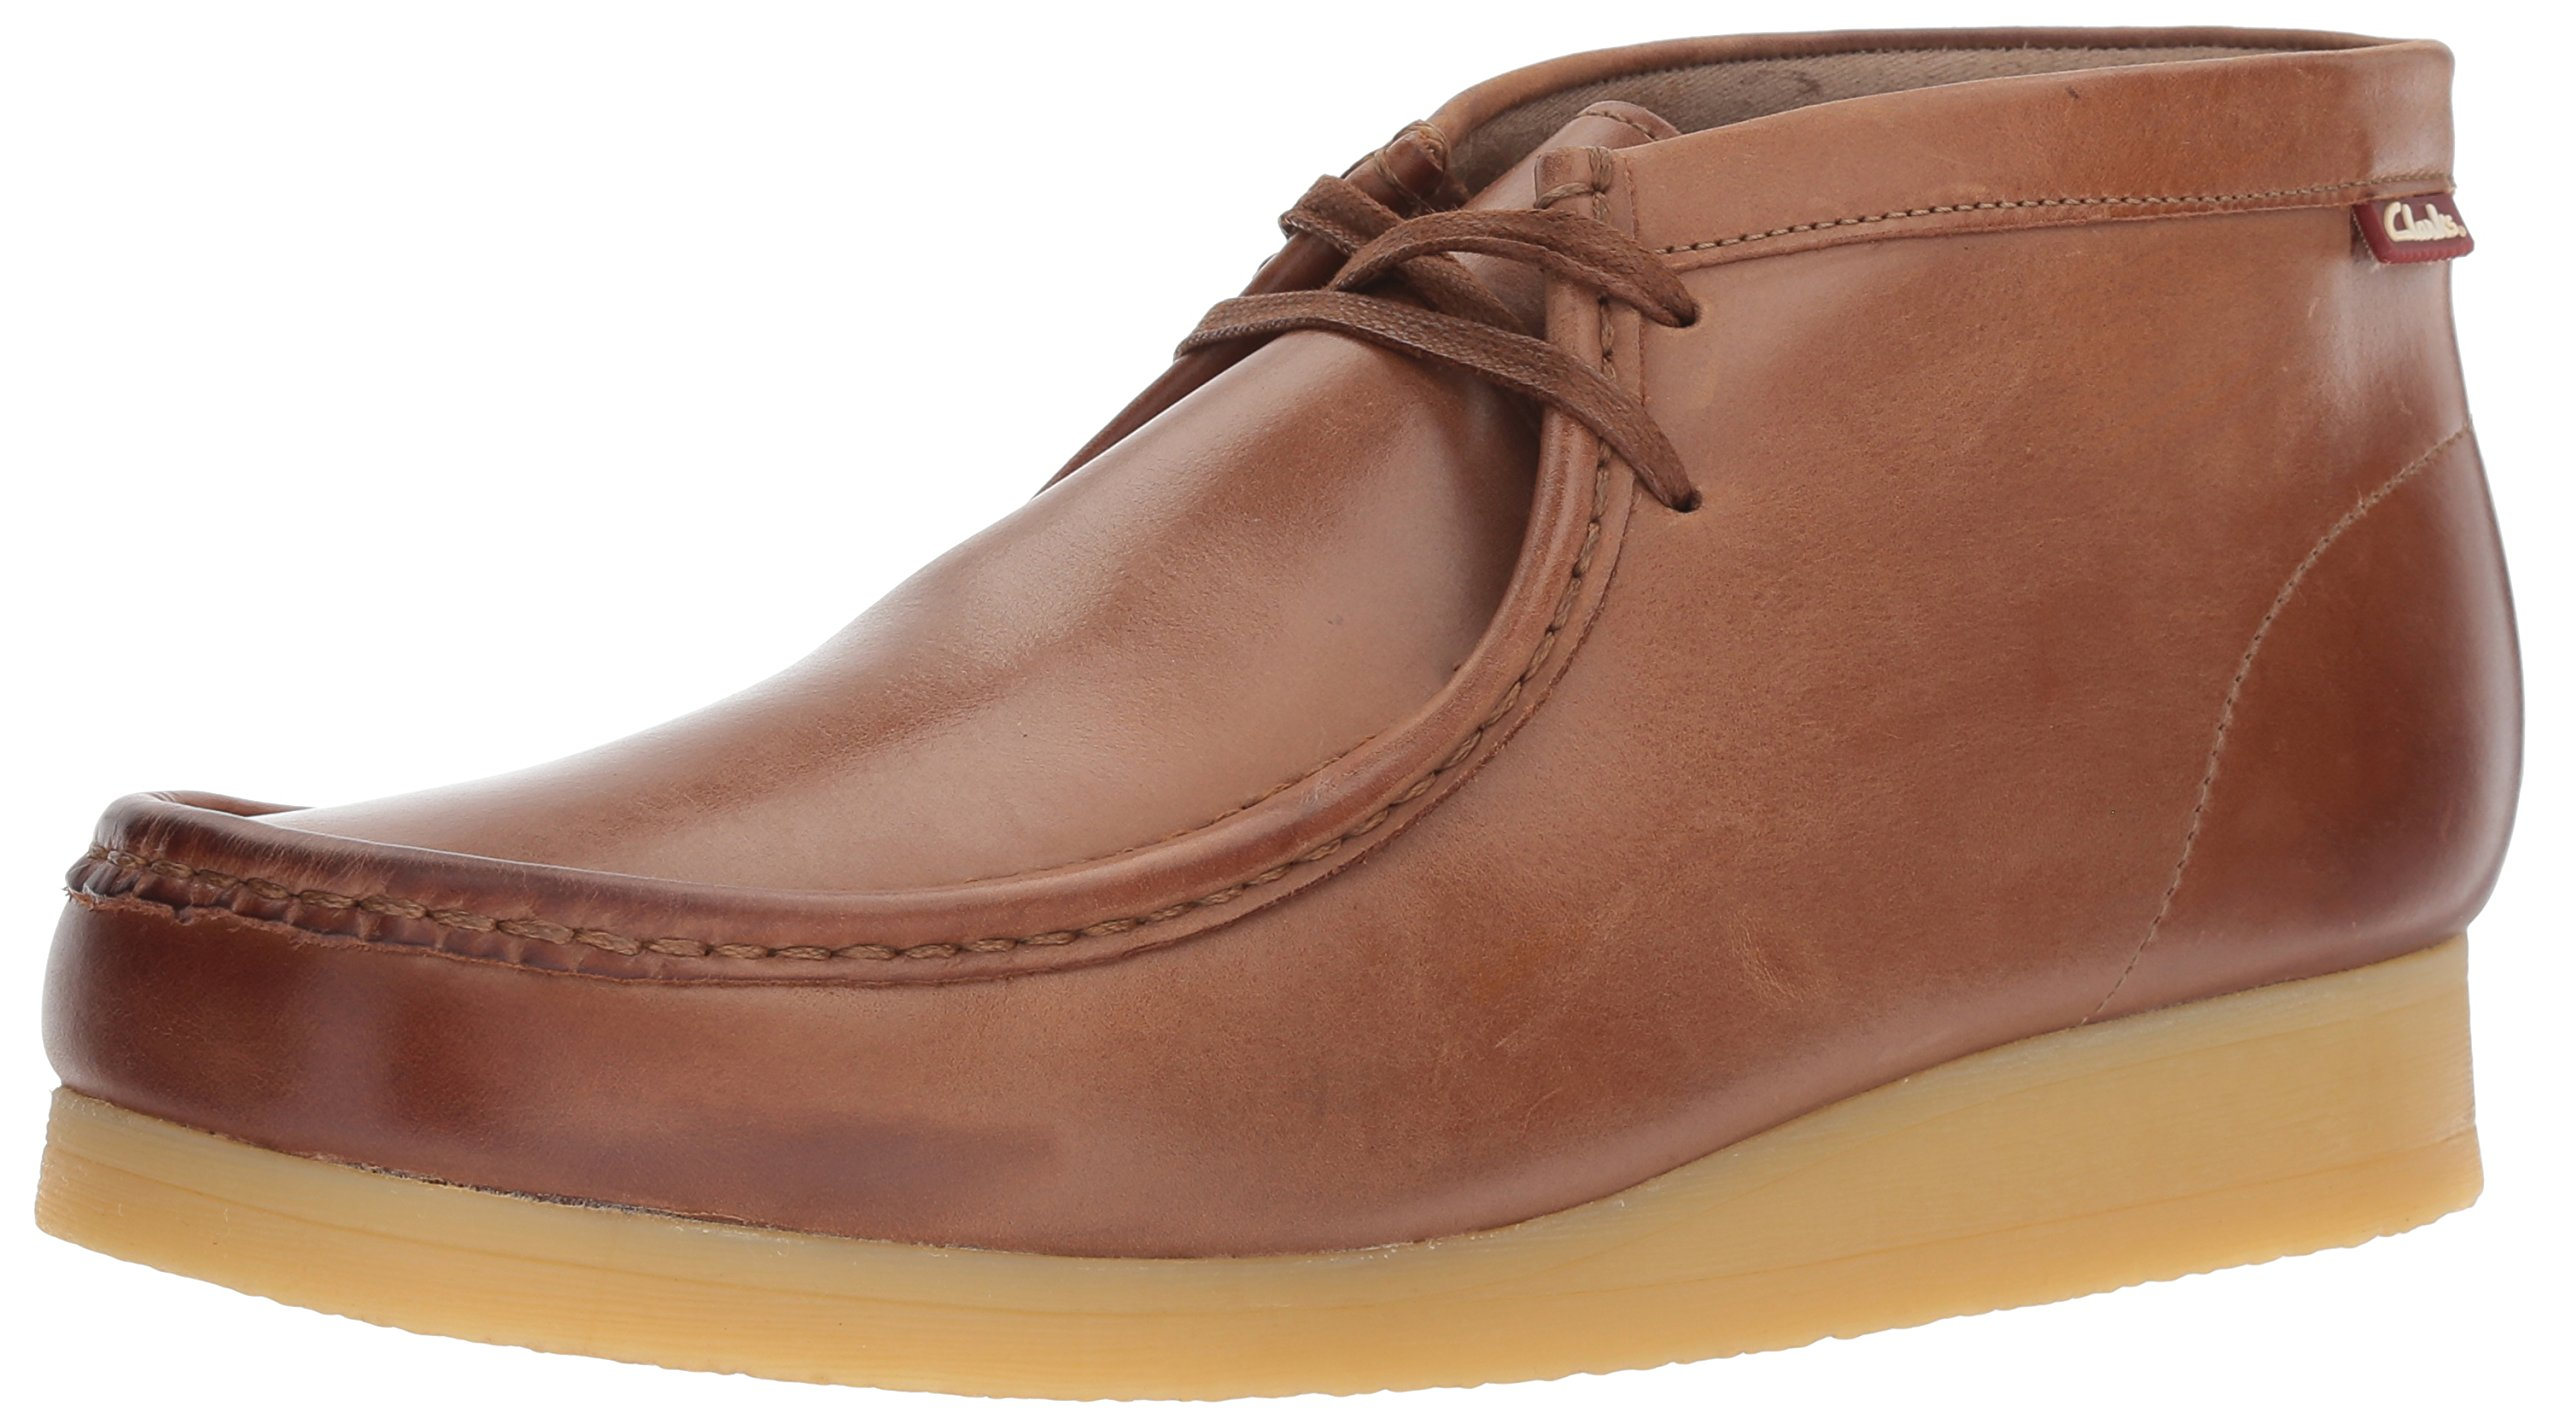 CLARKS Men's Stinson Hi Chukka Boot, Dark Tan Leather, 7.5 M US by CLARKS